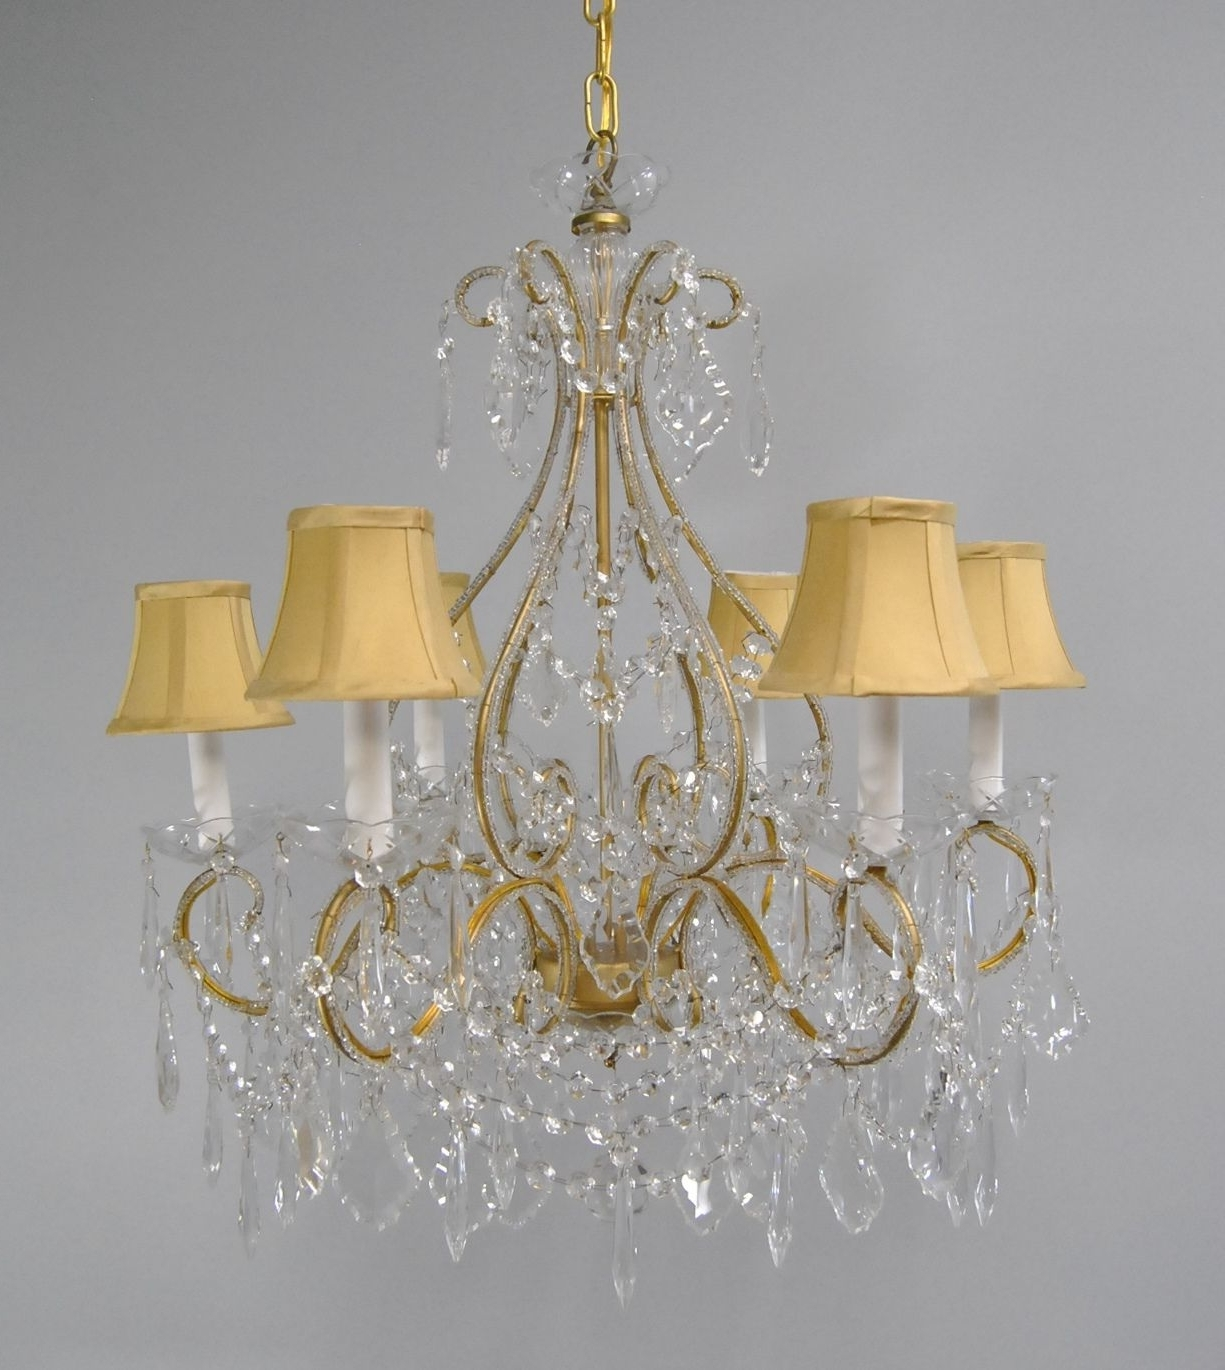 Brass And Crystal Chandeliers Throughout Widely Used Chandelier (View 2 of 15)